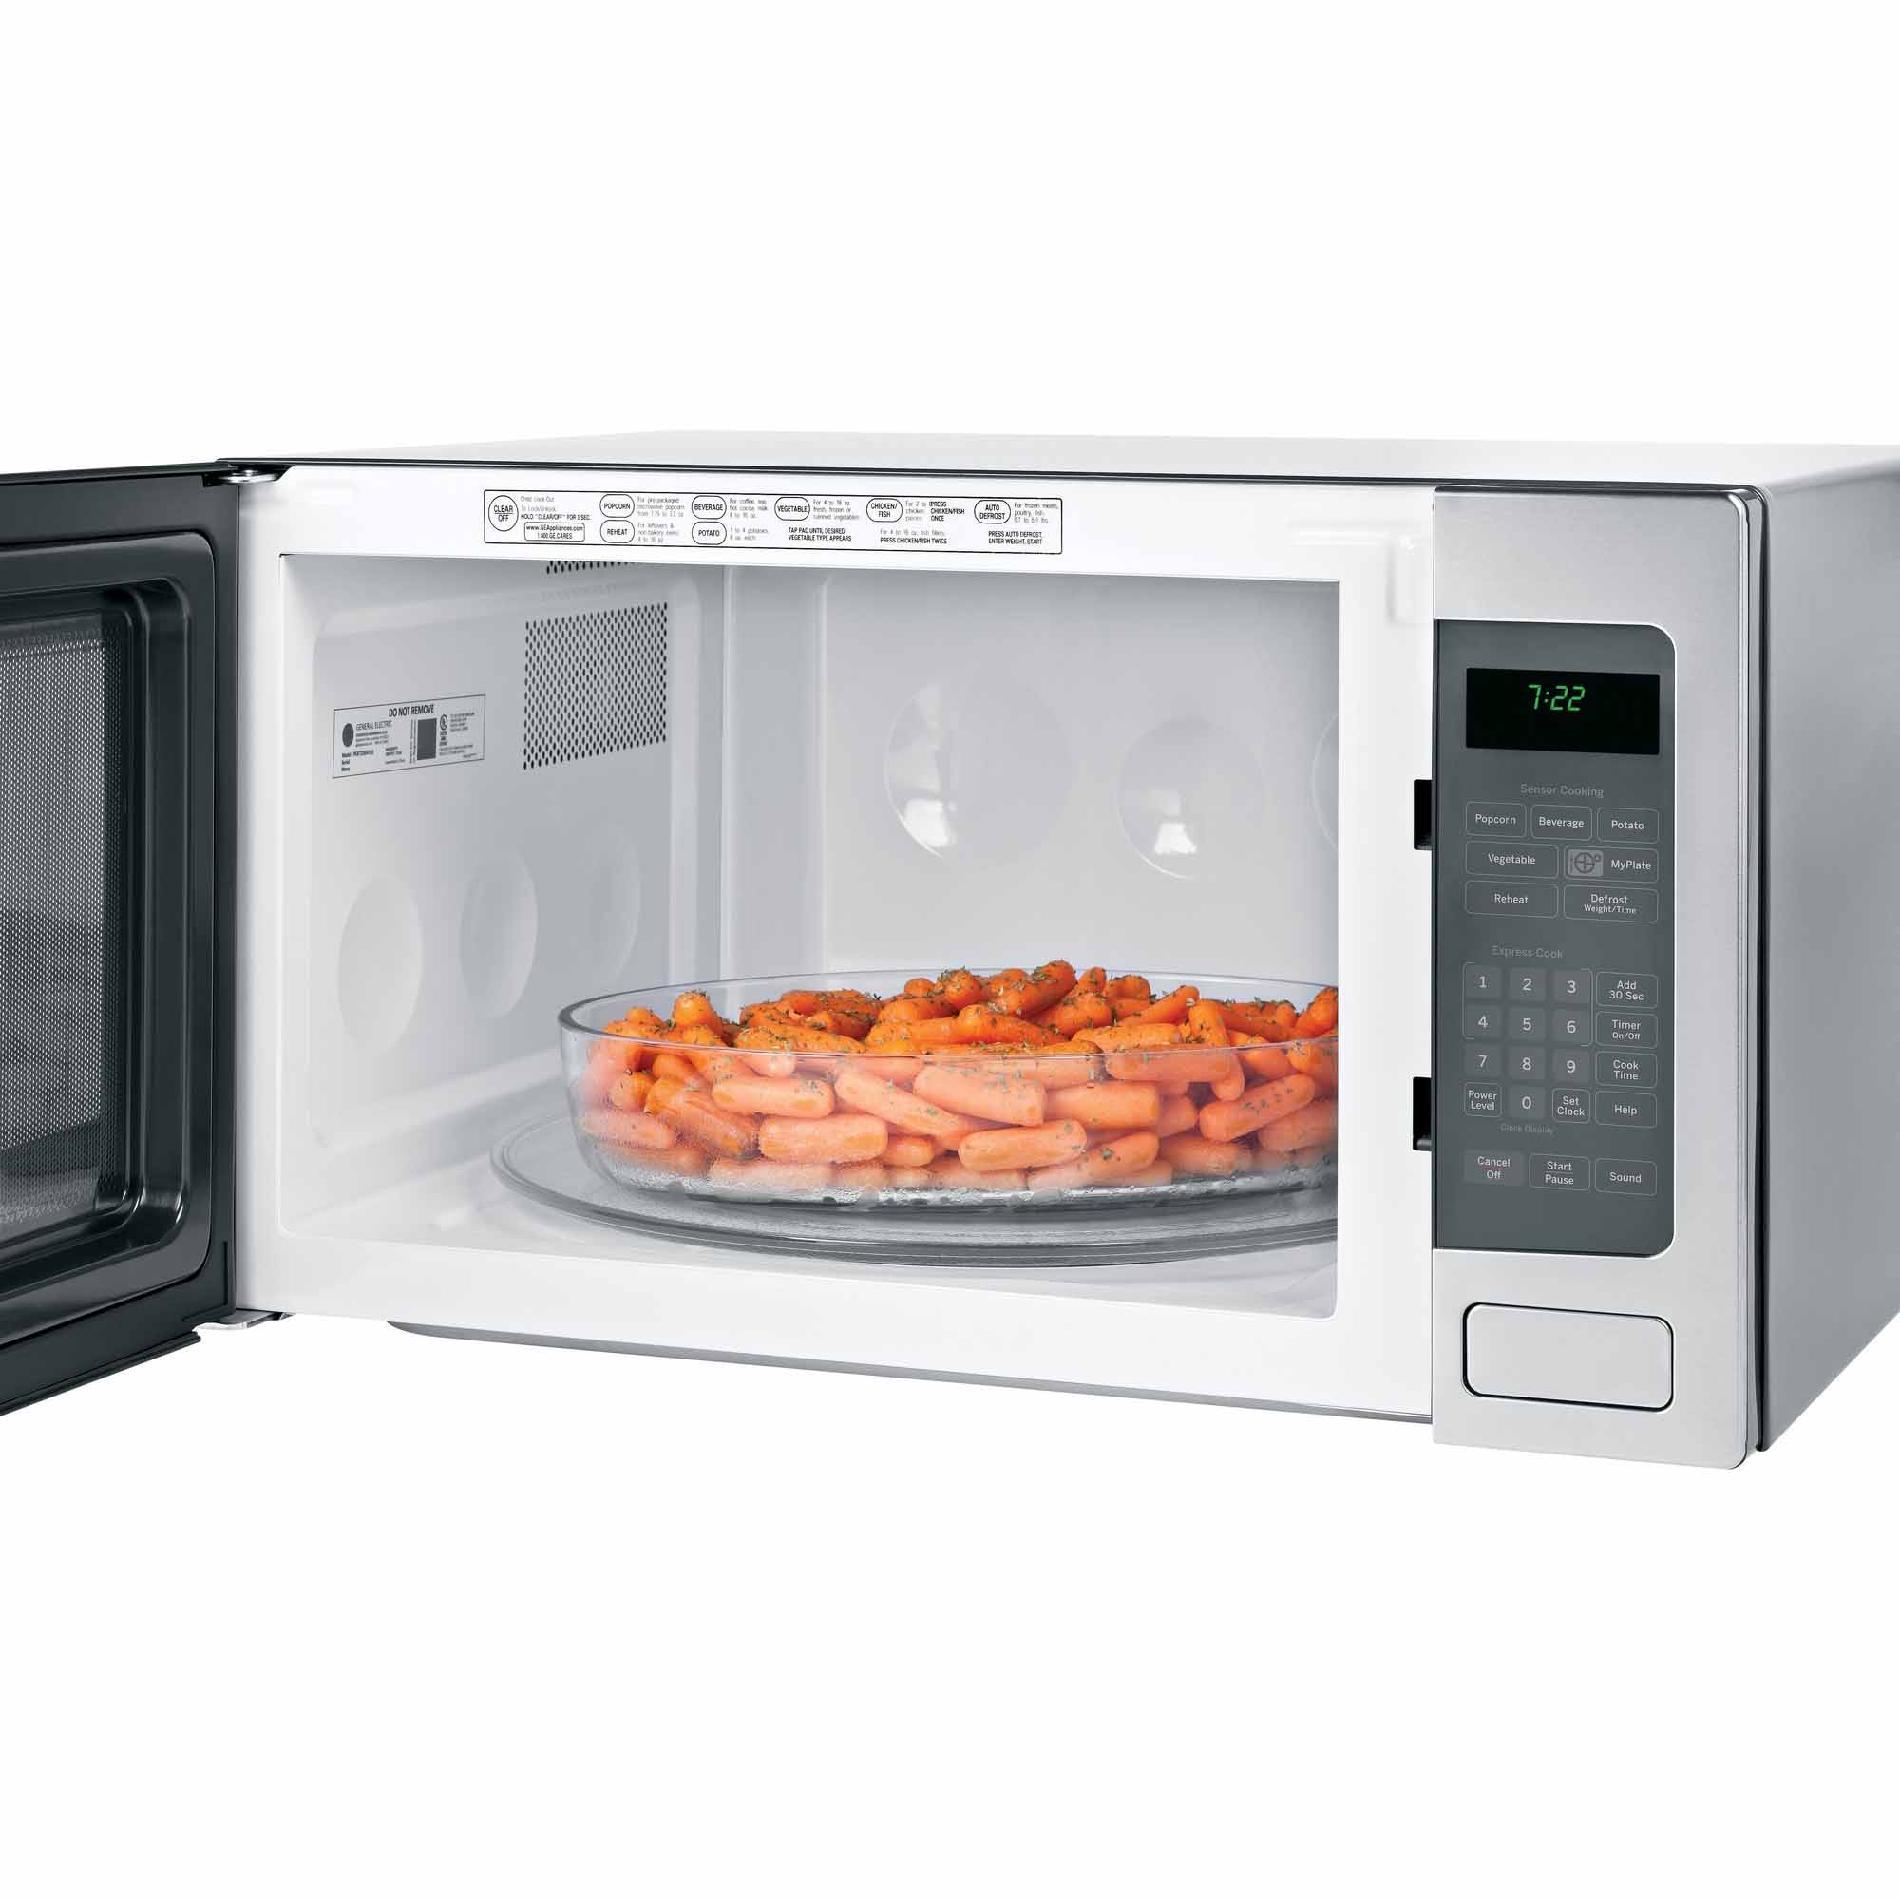 GE Appliances PEB7226SFSS 2.2 cu. ft. Countertop Microwave Oven - Stainless Steel